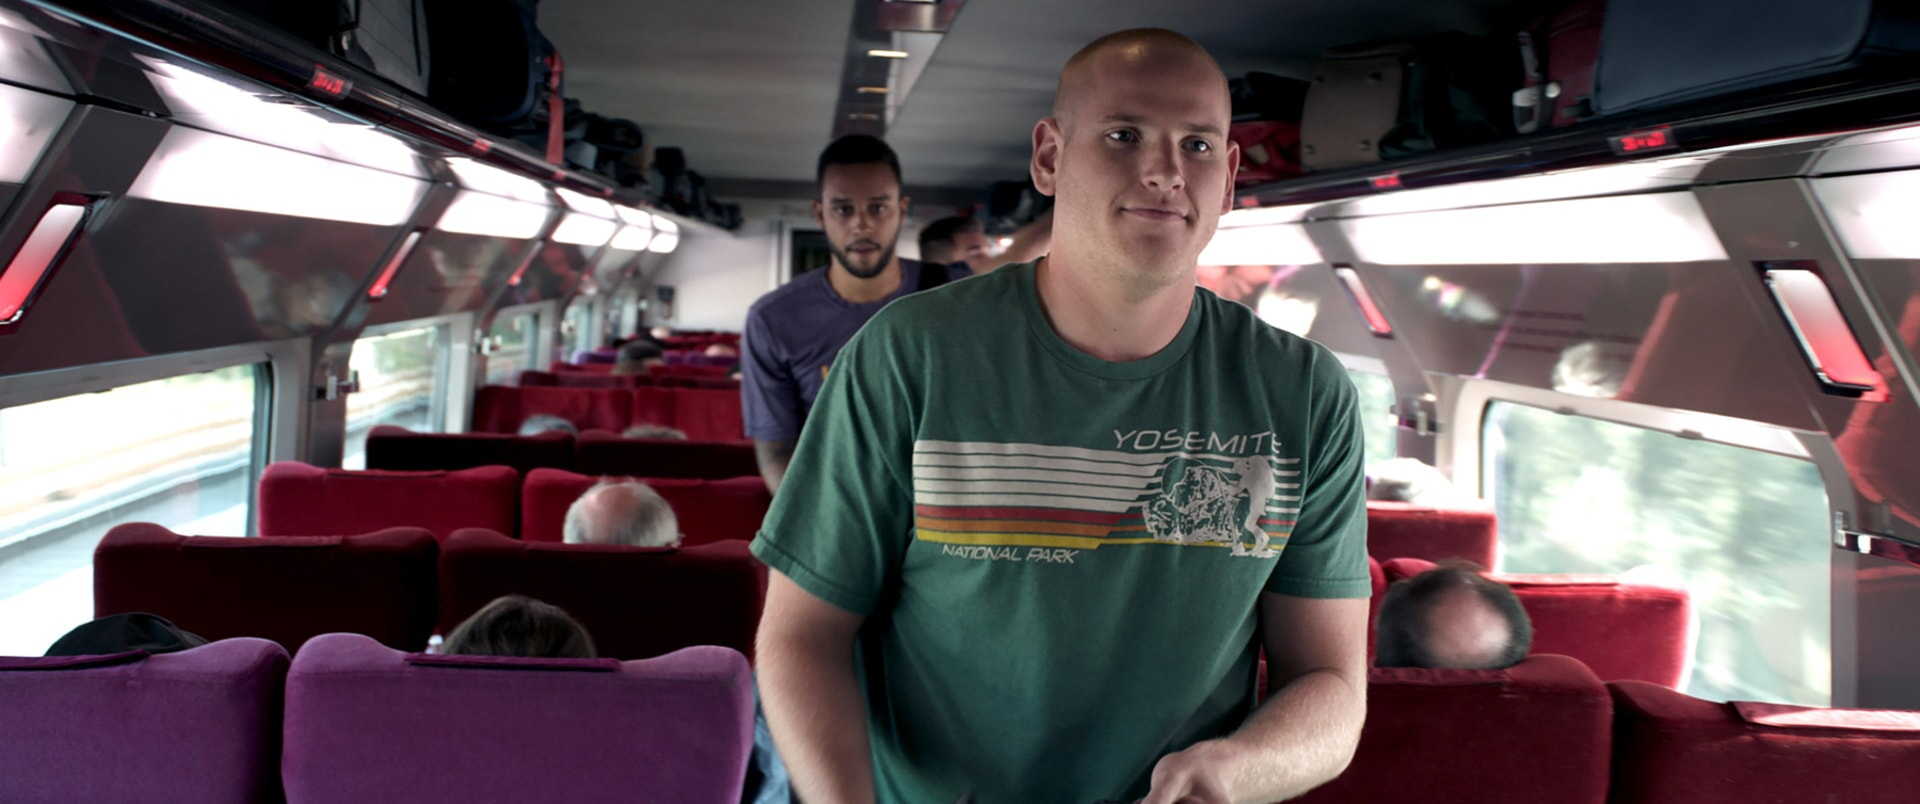 """ANTHONY SADLER as Anthony and SPENCER STONE as Spencer in Warner Bros. Pictures' and Village Roadshow Pictures' """"THE 15:17 TO PARIS,"""" a Warner Bros. Pictures release."""